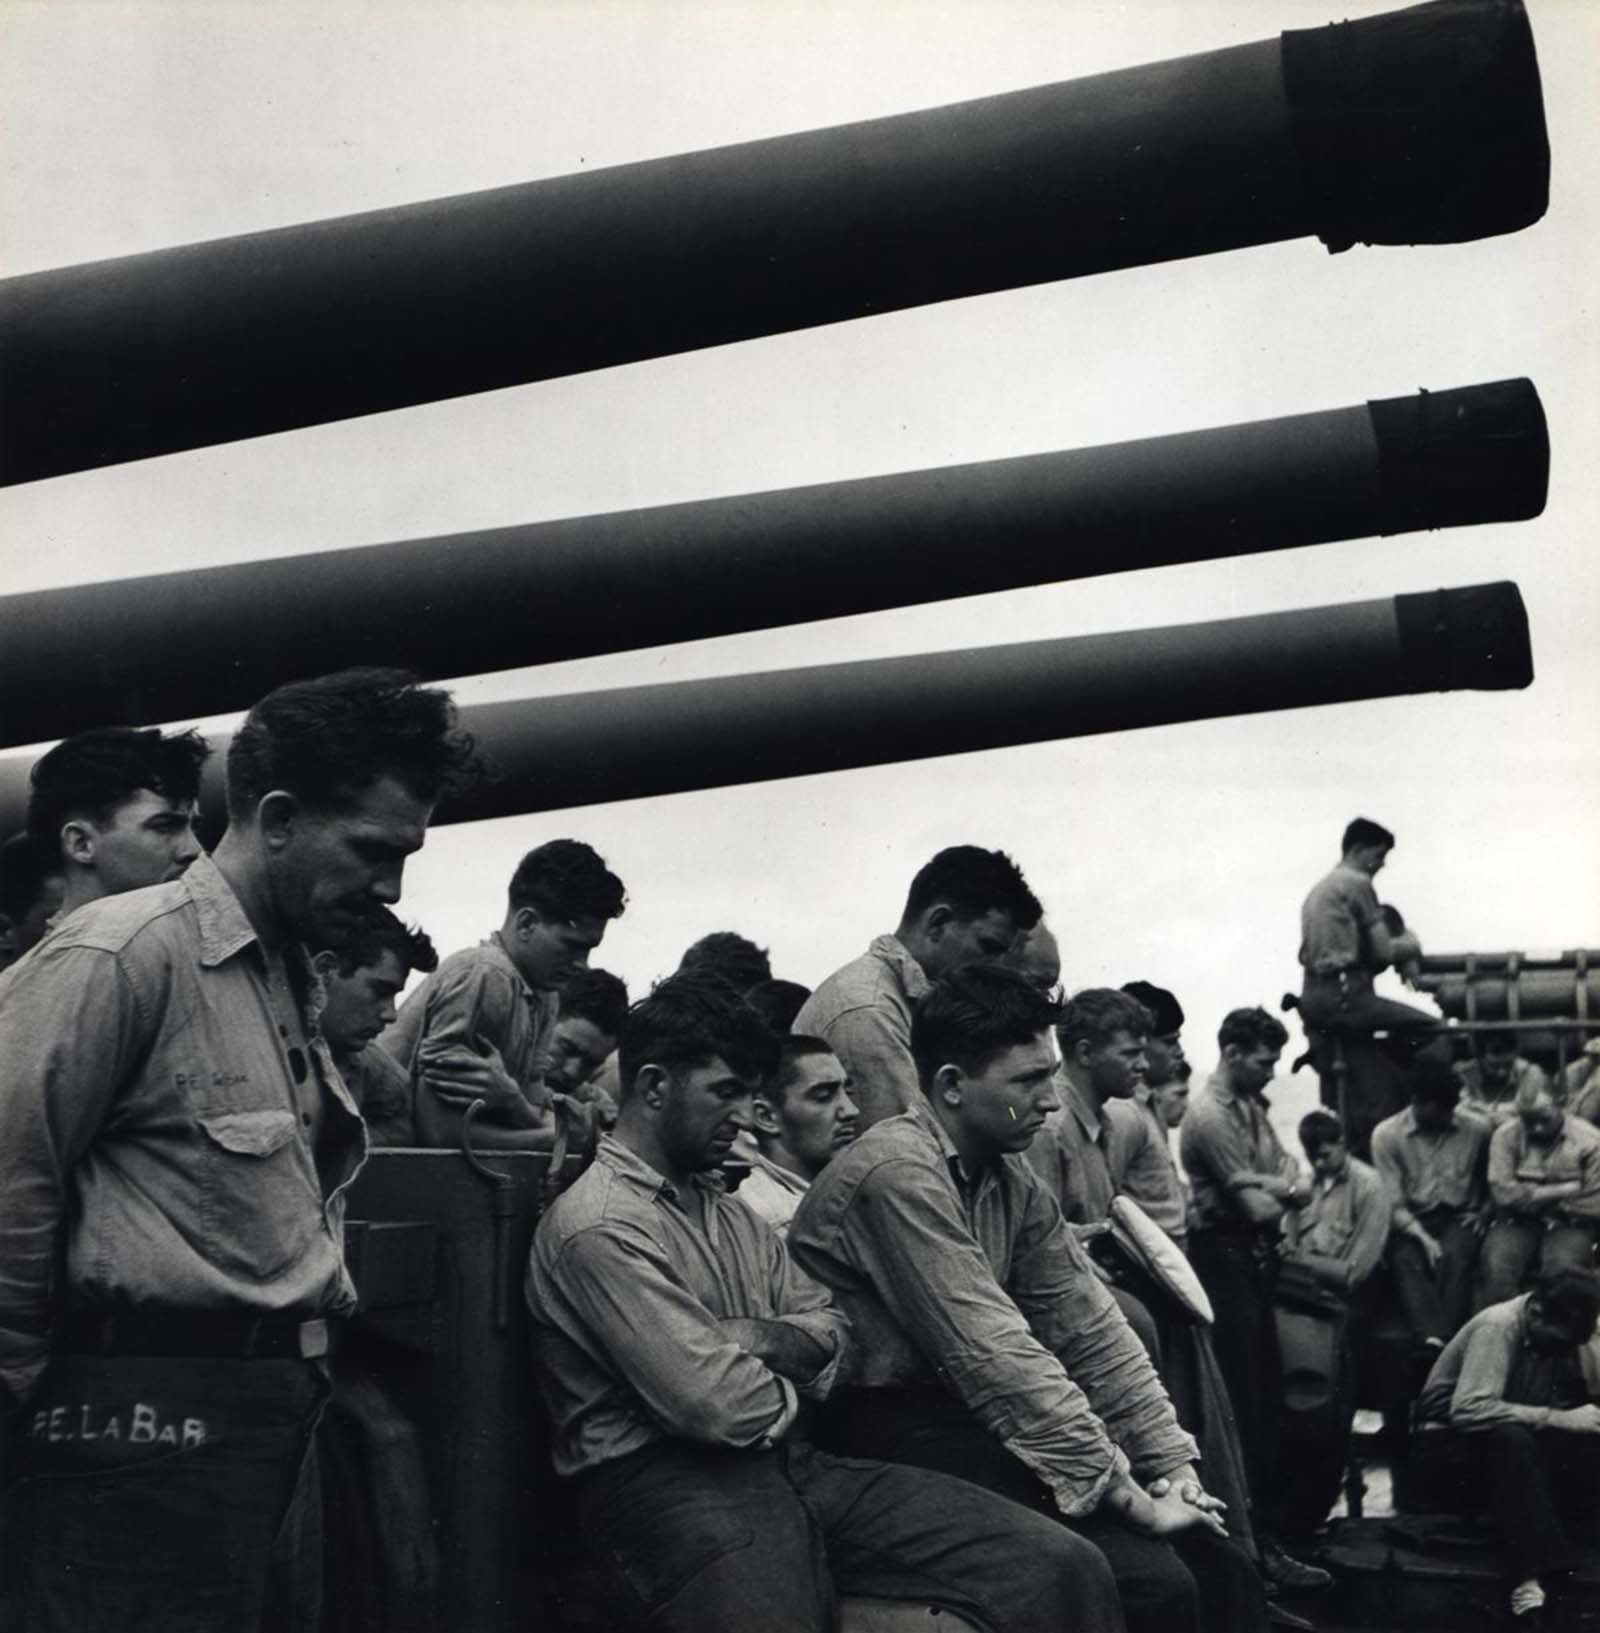 Sailors Aboard U.S.S. Yorktown with Naval Artillery Above, c. 1943.